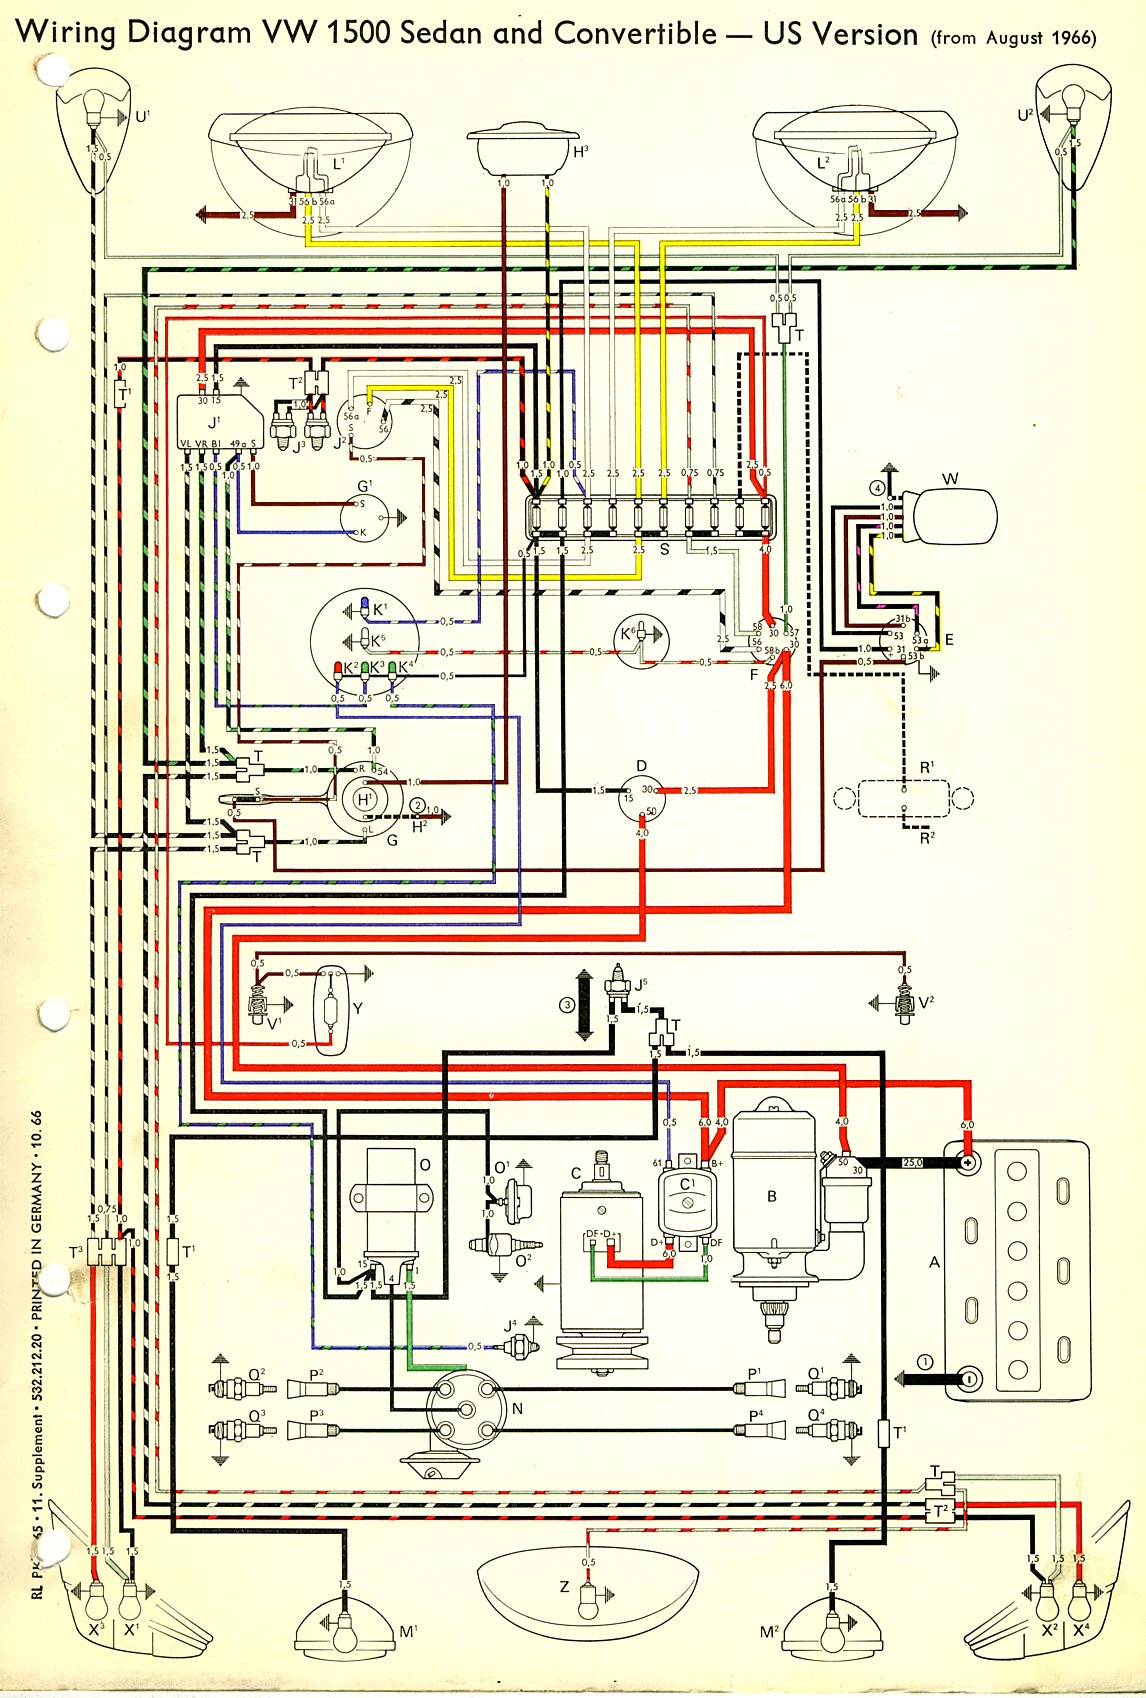 1967 beetle wiring diagram (usa) | thegoldenbug.com wiring diagram 1957 chevy 1967 vw beetle 1967 vw beetle fuse box wiring diagram #7